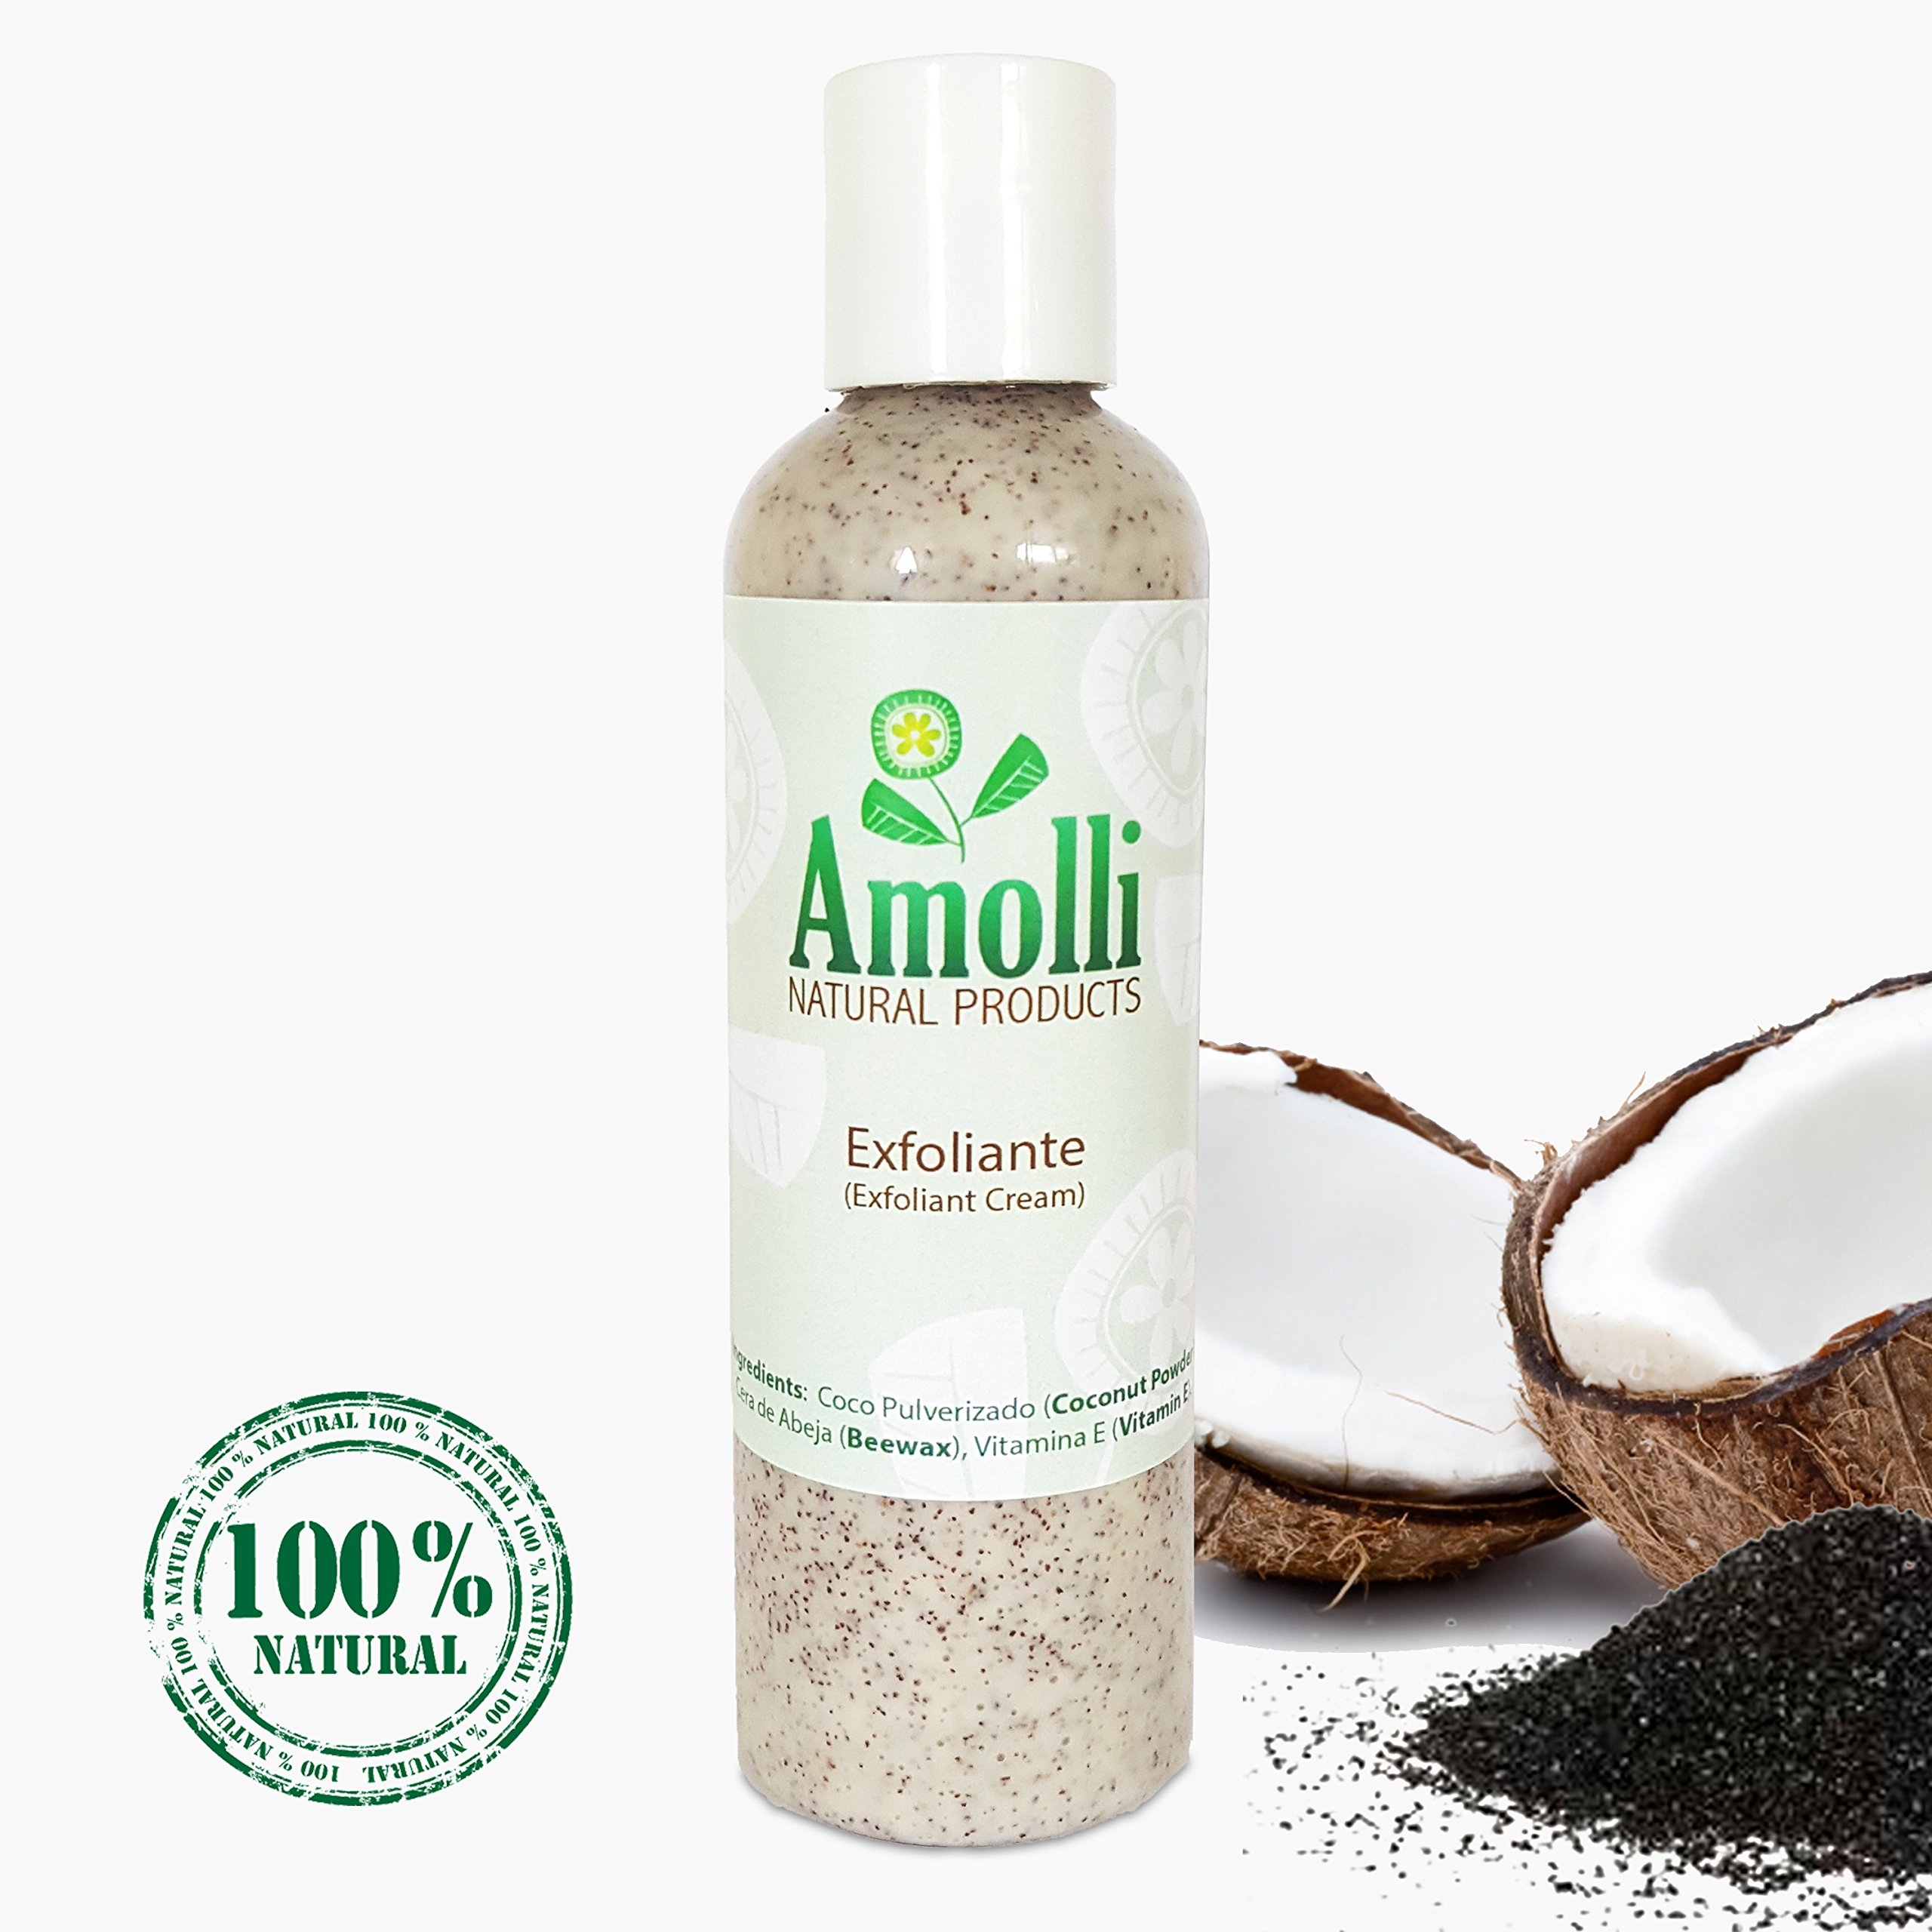 Pulverized Coconut Exfoliant Lotion by Amolli Natural Products